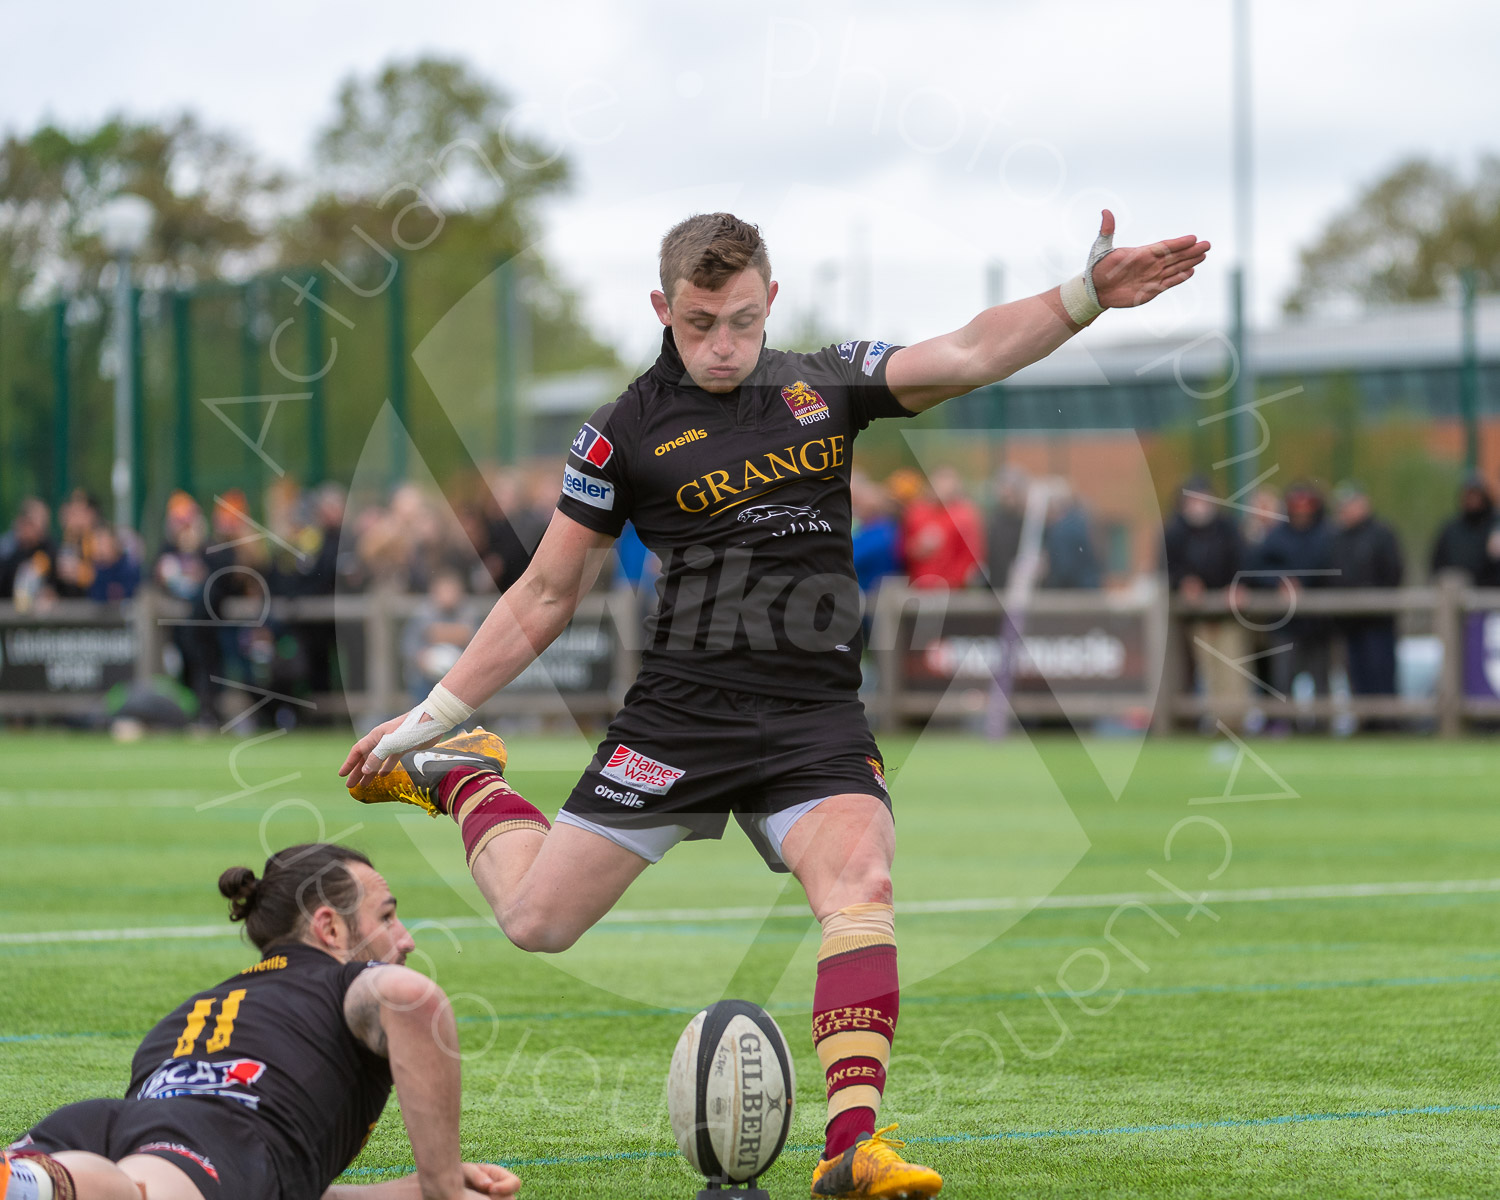 20190427 Loughborough vs Ampthill 1st XV #6556